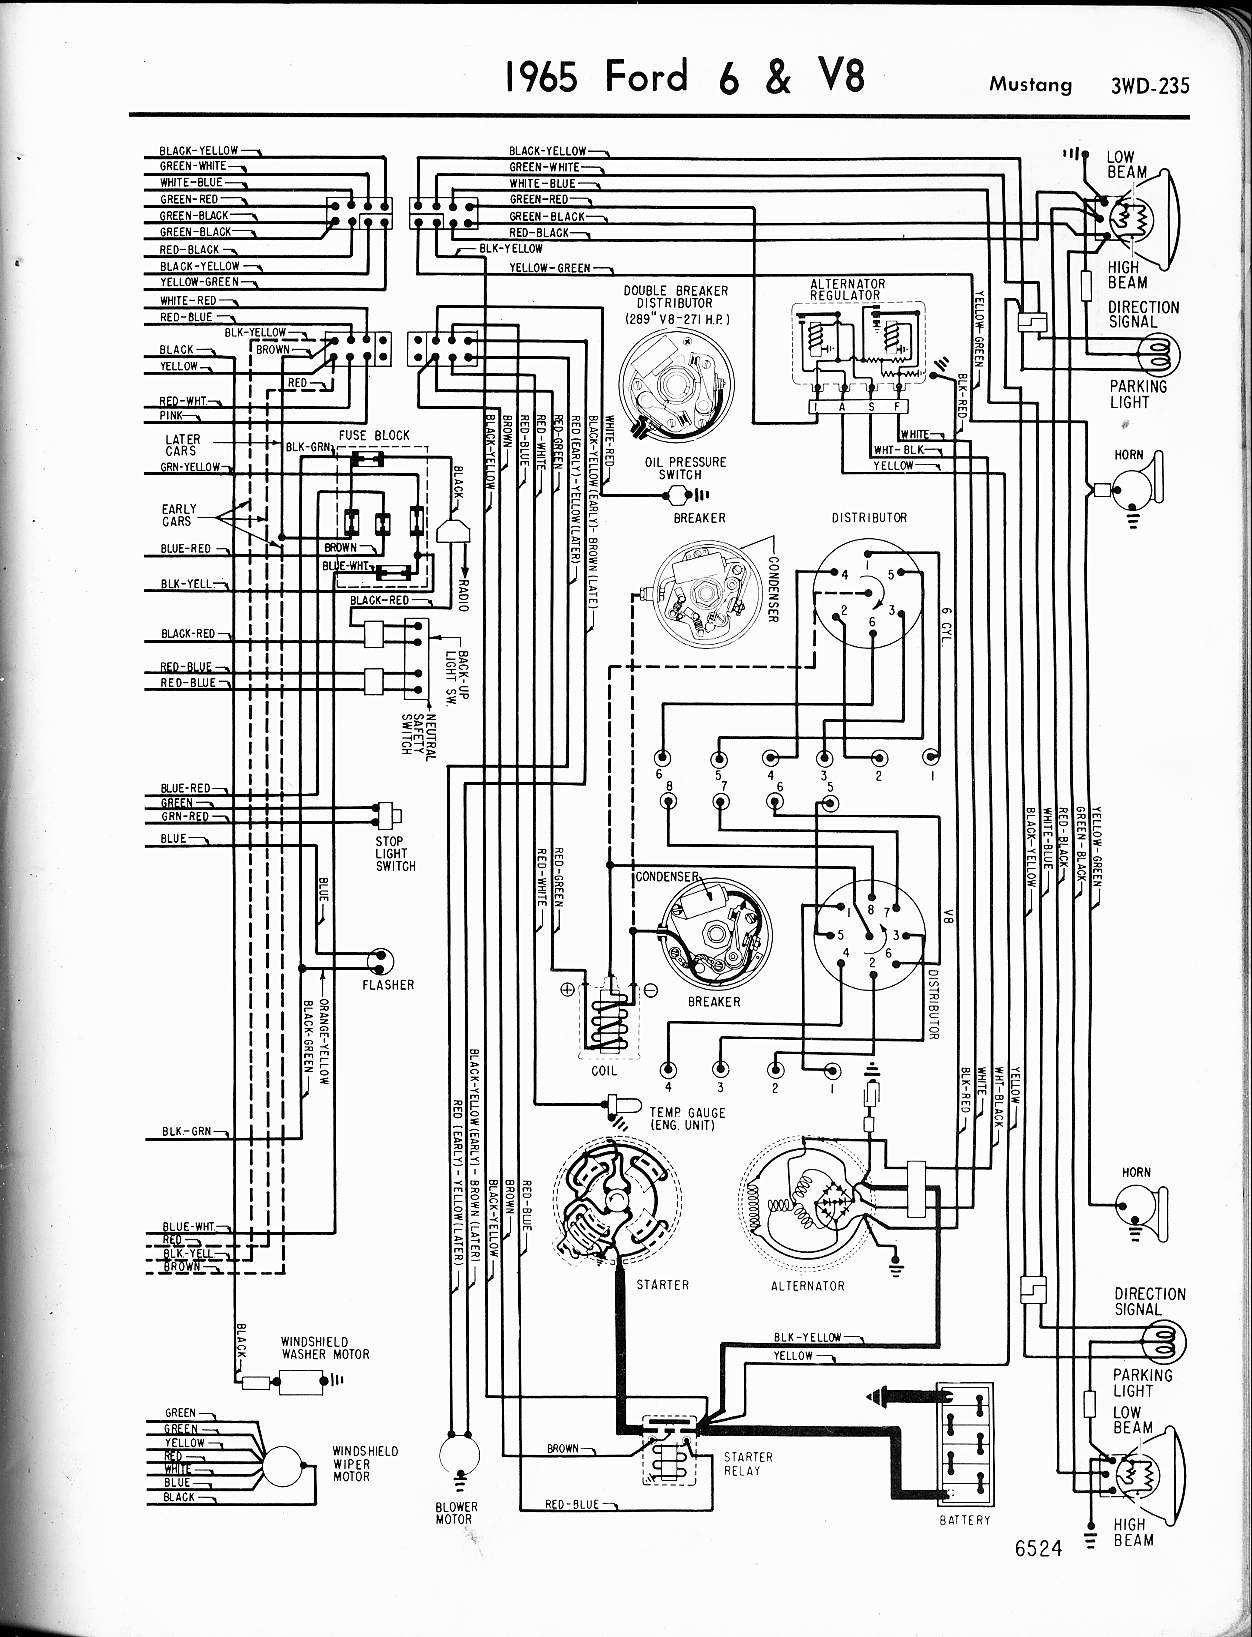 Ford Diagrams 7 Wire Wiring Diagram For 65 Mustang 2 Drawing B